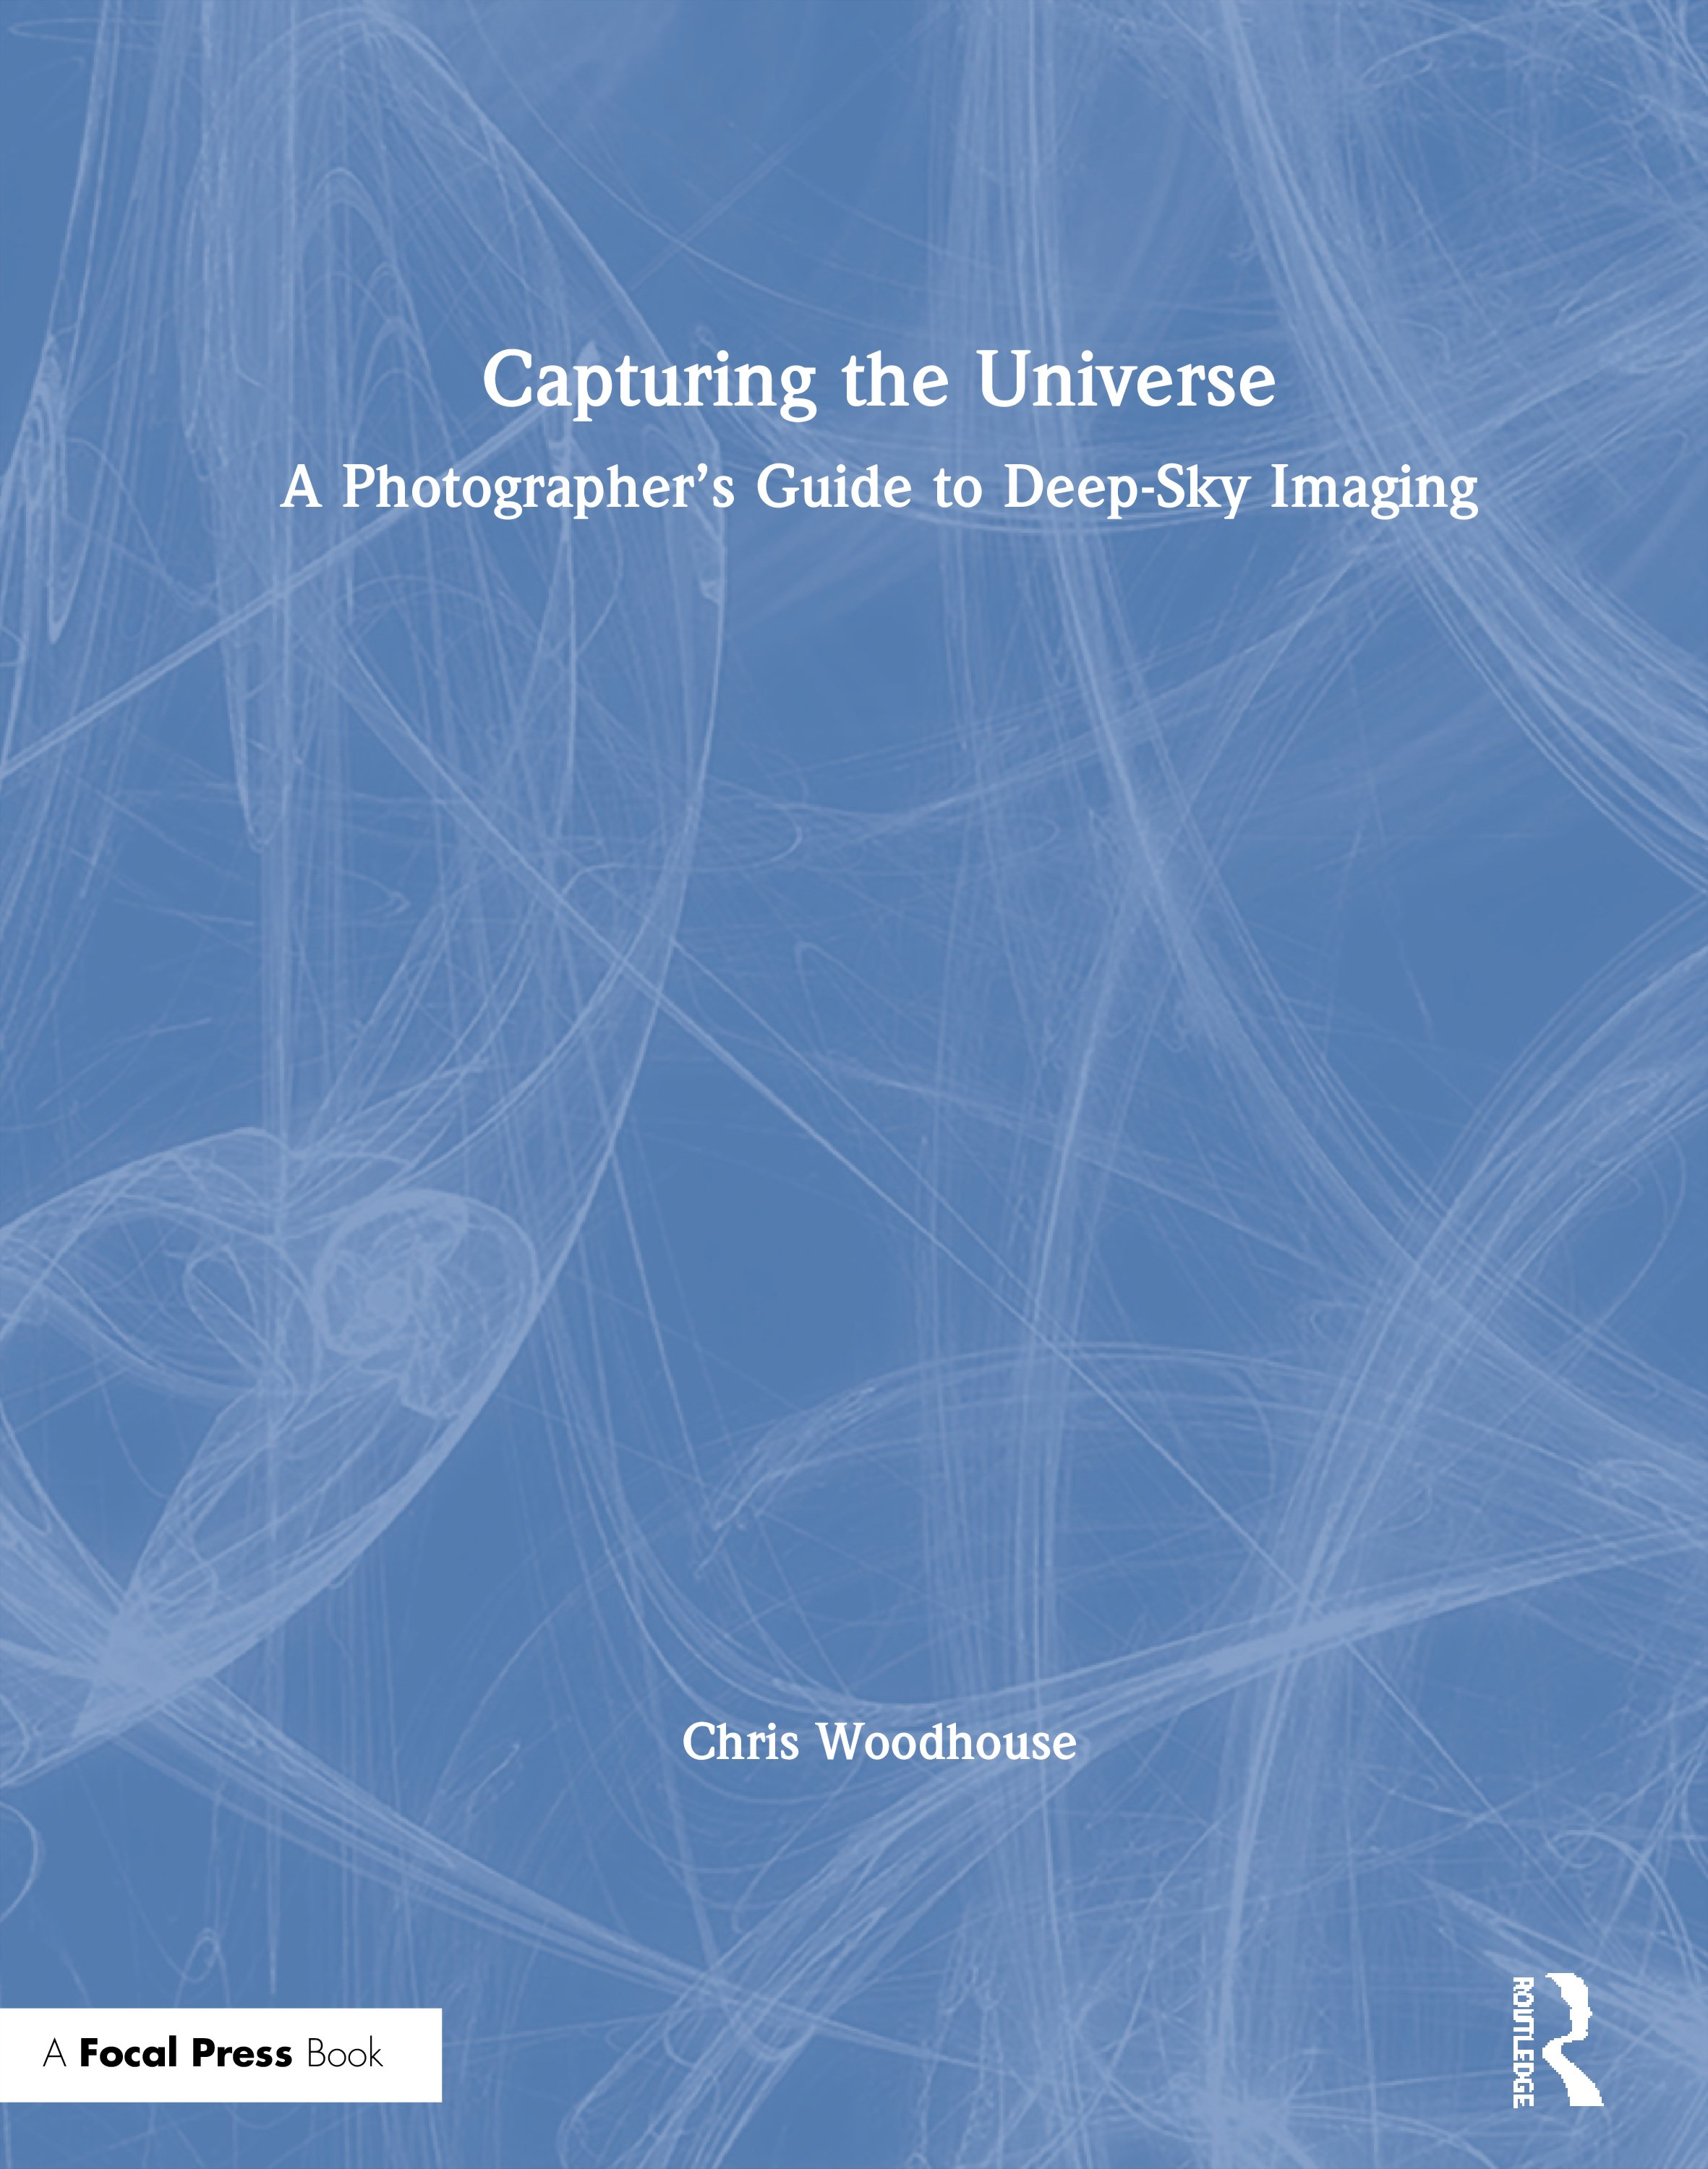 Capturing the Universe: A Photographer's Guide to Deep-Sky Imaging book cover